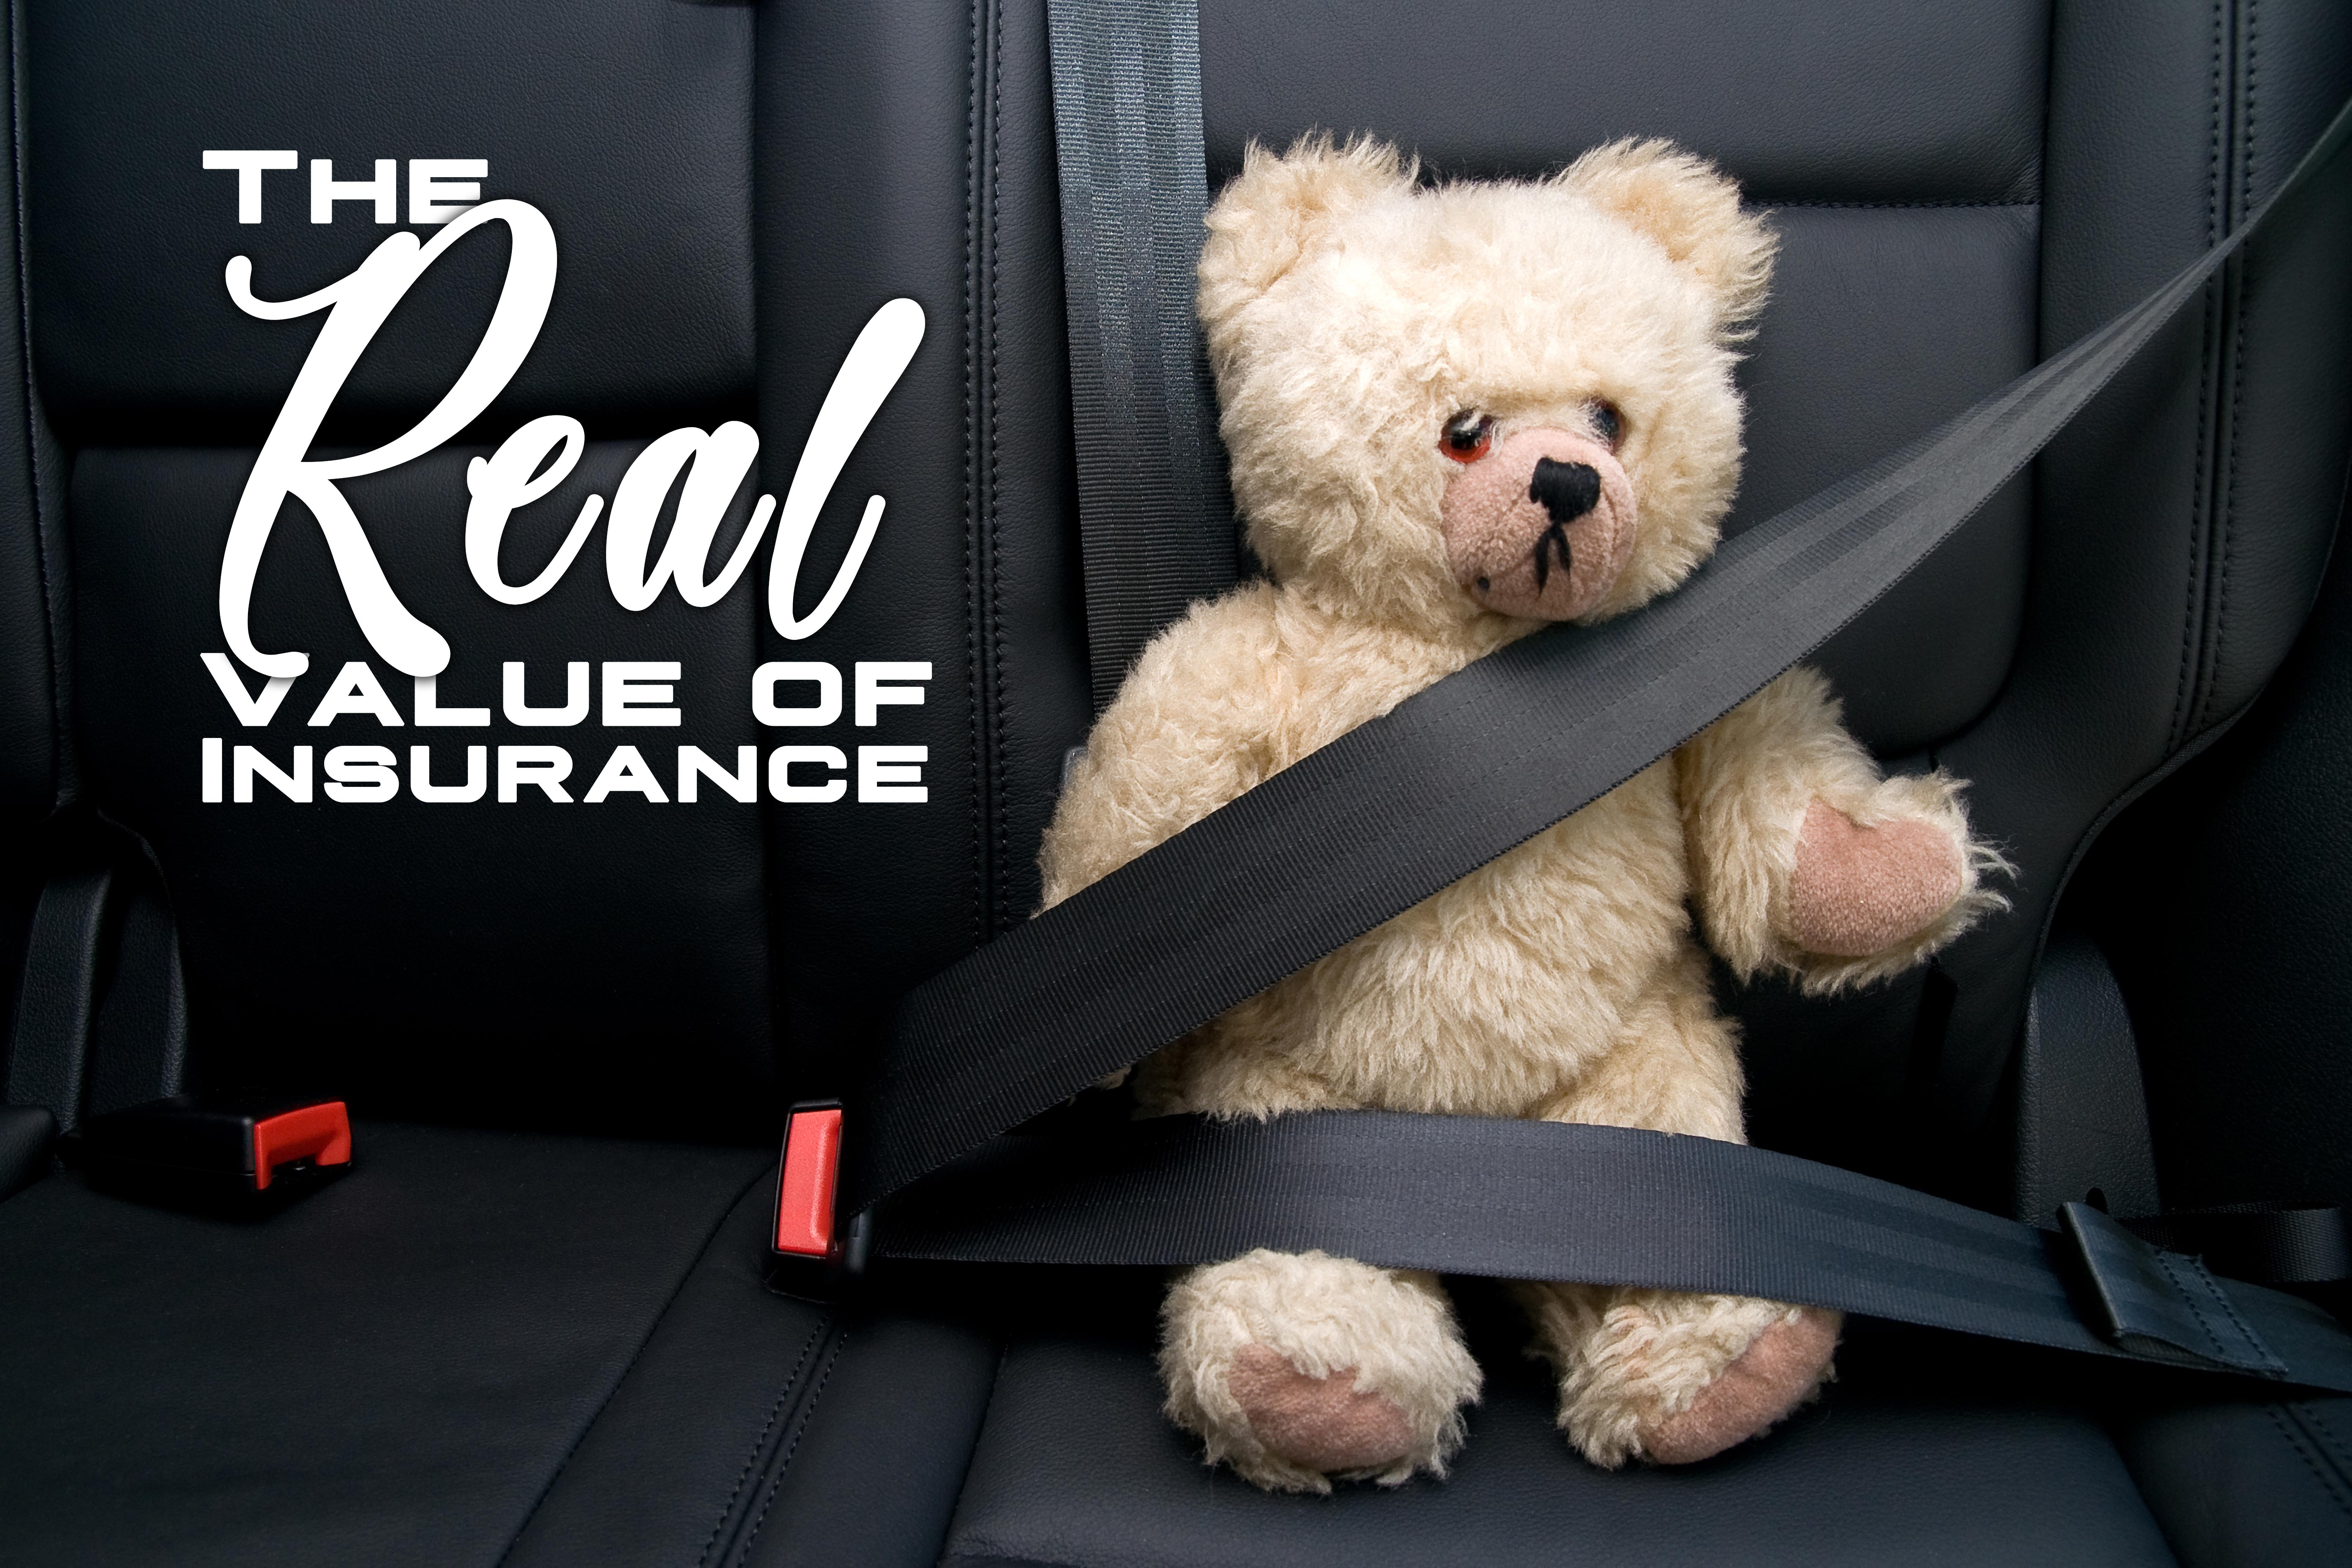 The Real Value of Insurance